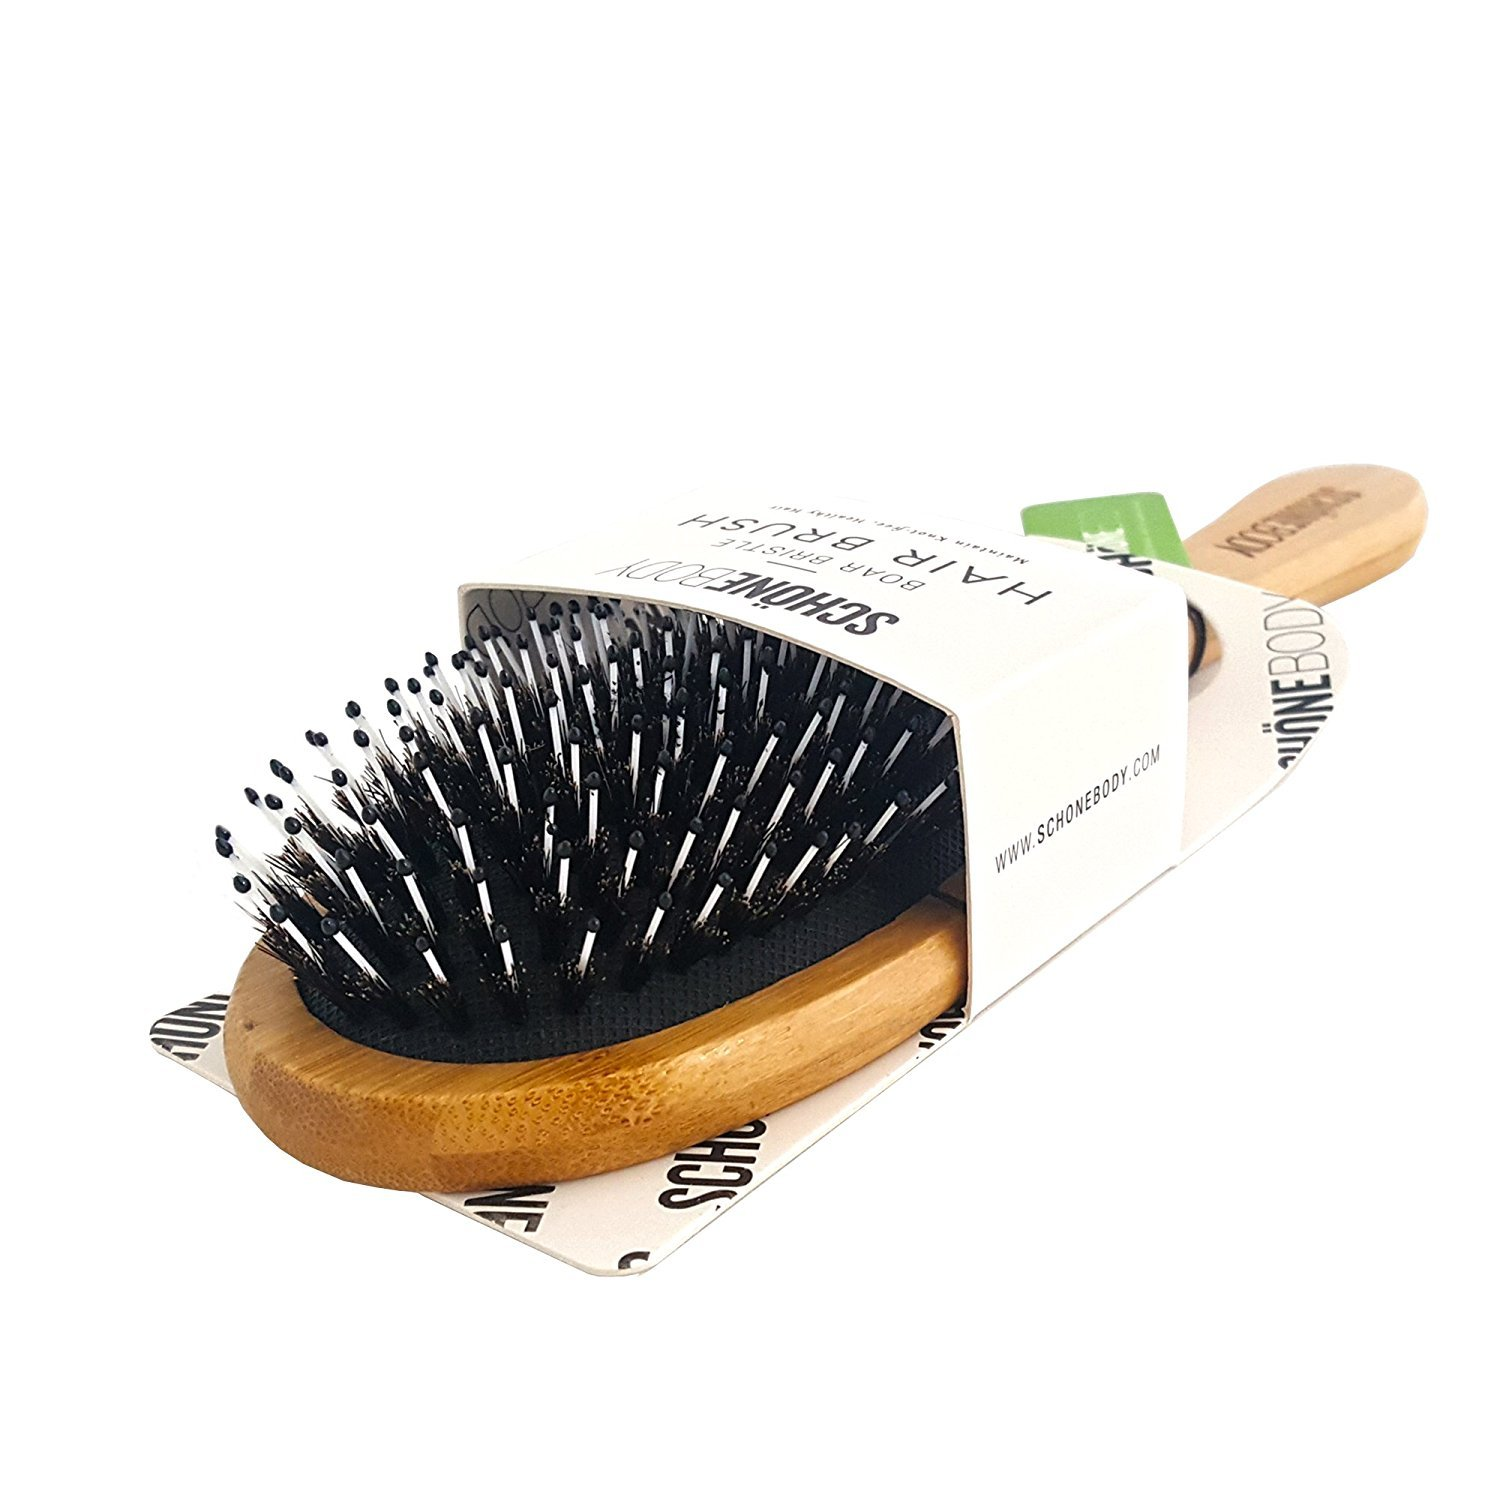 Hair Brush  Boar Bristle Hair Brush - Natural Wooden Bamboo Helps Maintain and Control Frizzy  Unmanageable Hair  While the Pins Hair Detanlger and Massage Scalp For Healthy Hair  Eco-Friendly Paddle